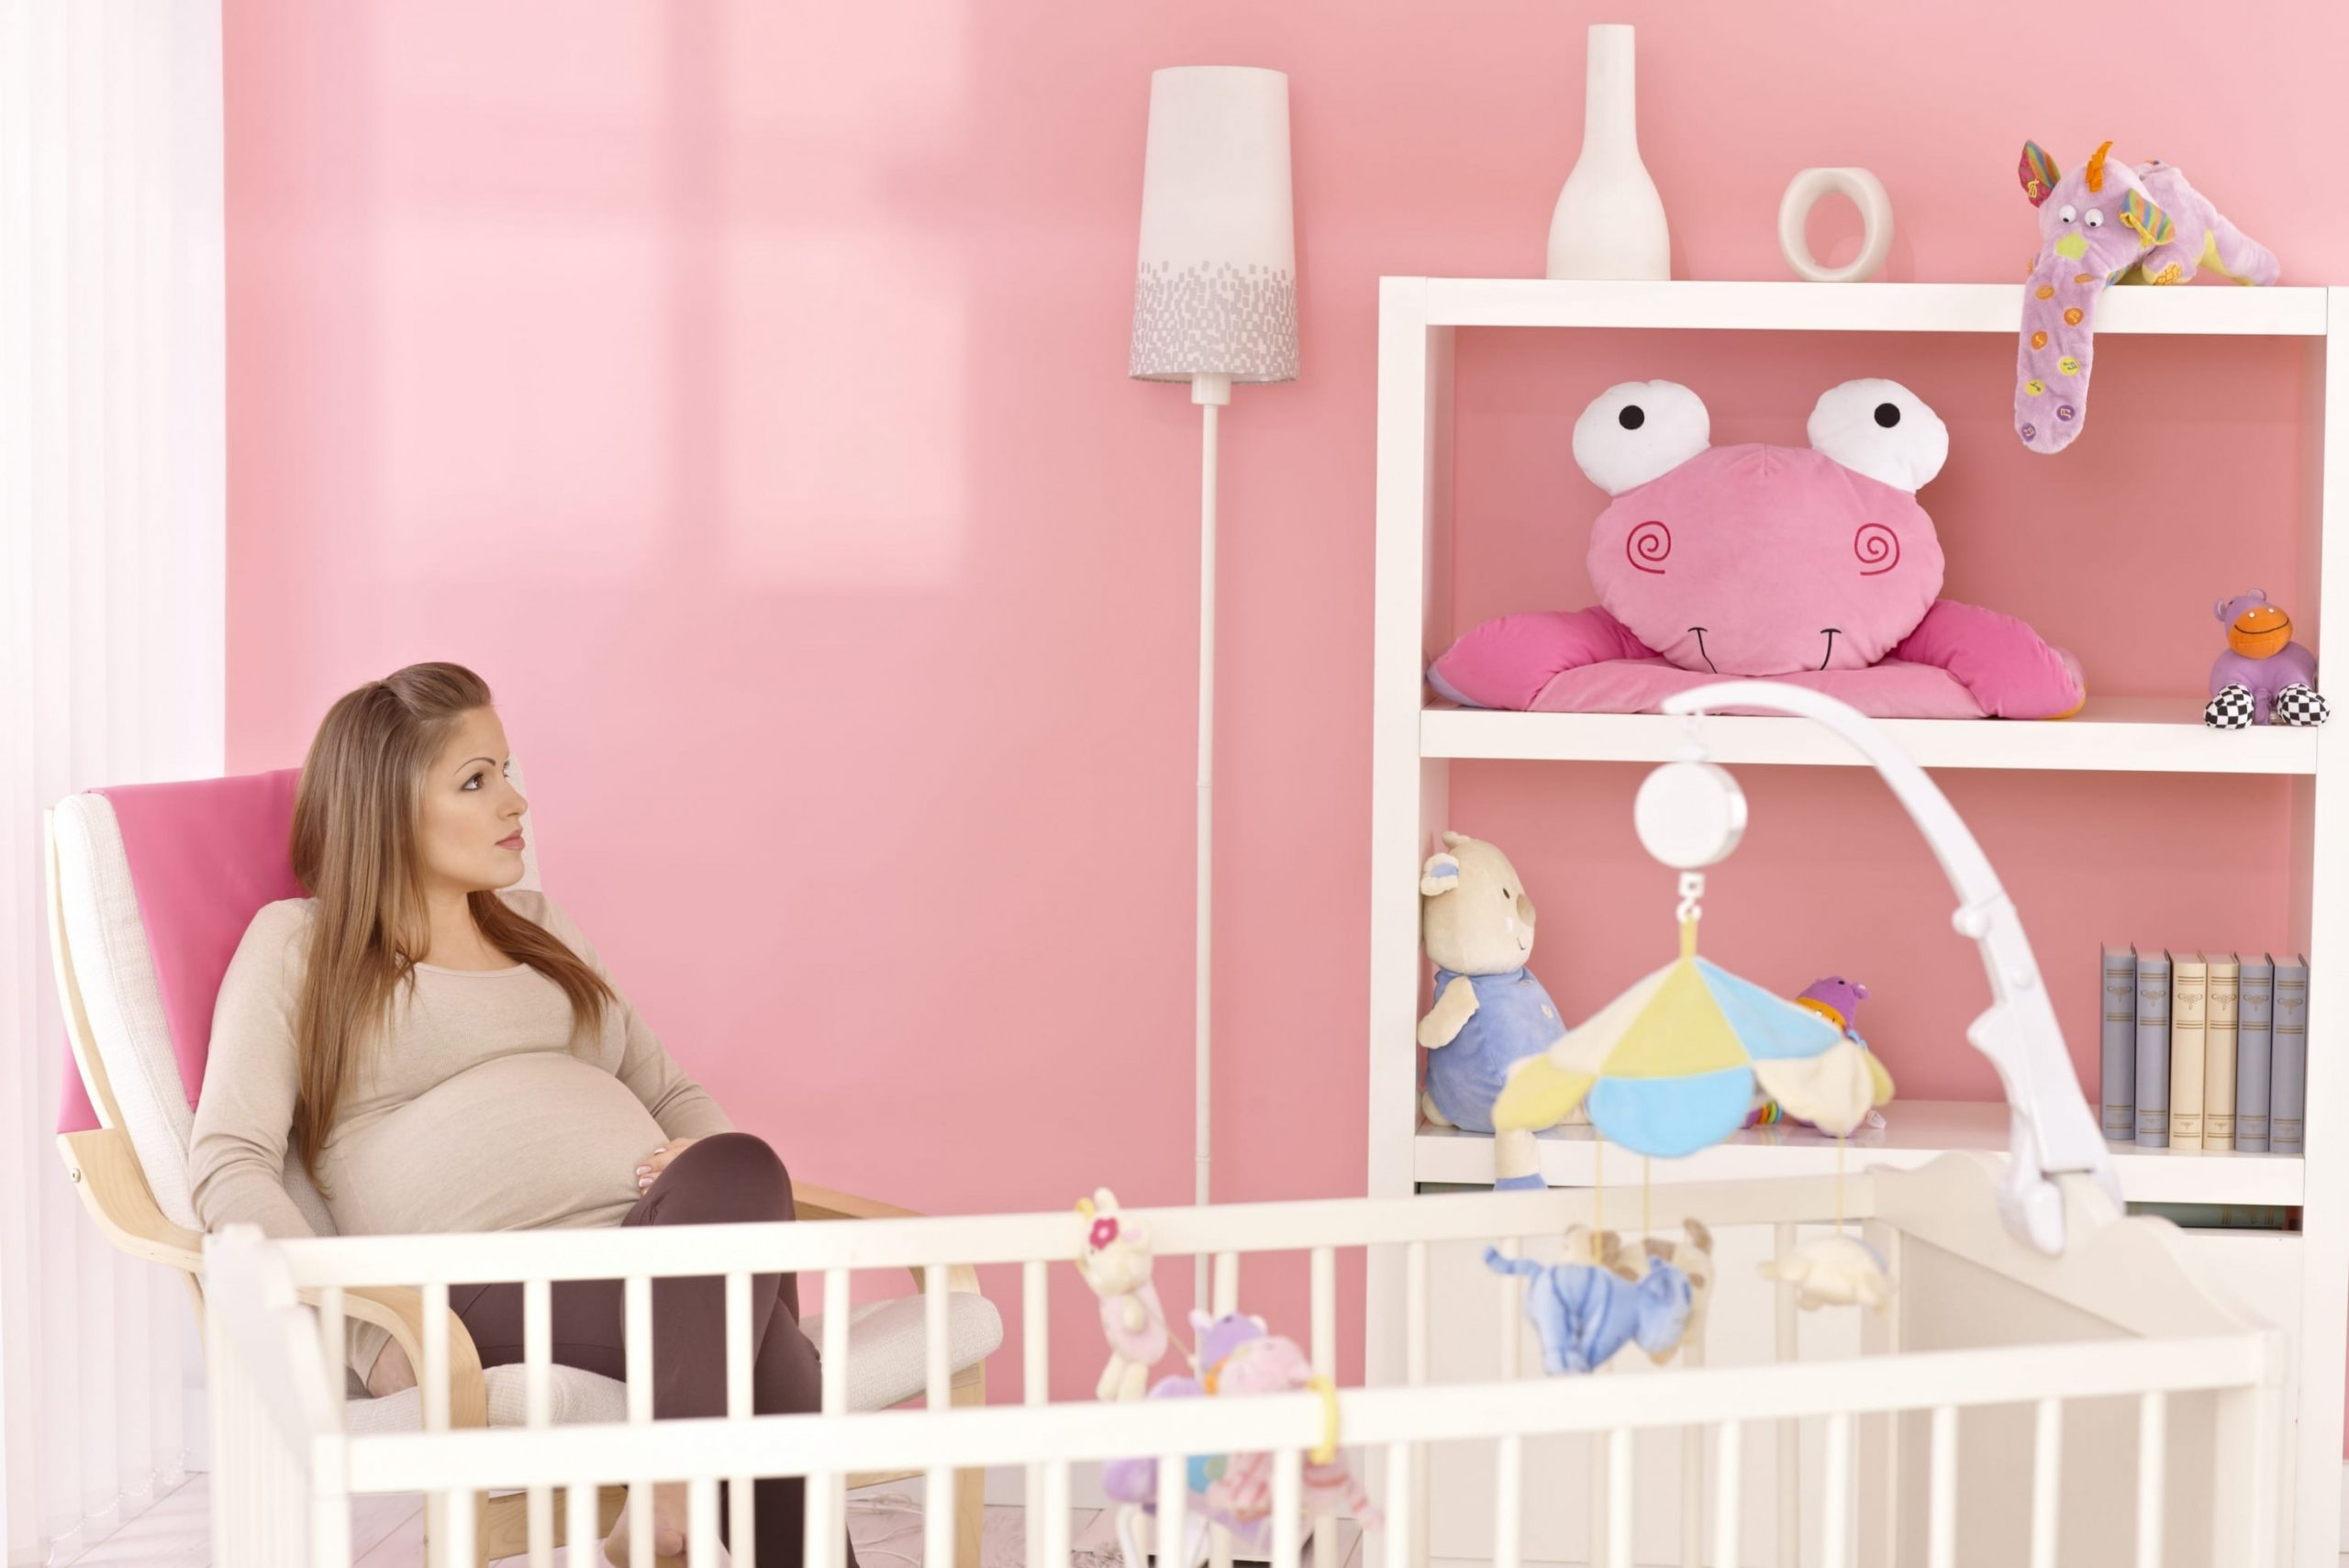 Baby Nursery Checklist: 11 Essential Items & 11 Things to Forget - Baby Room Checklist